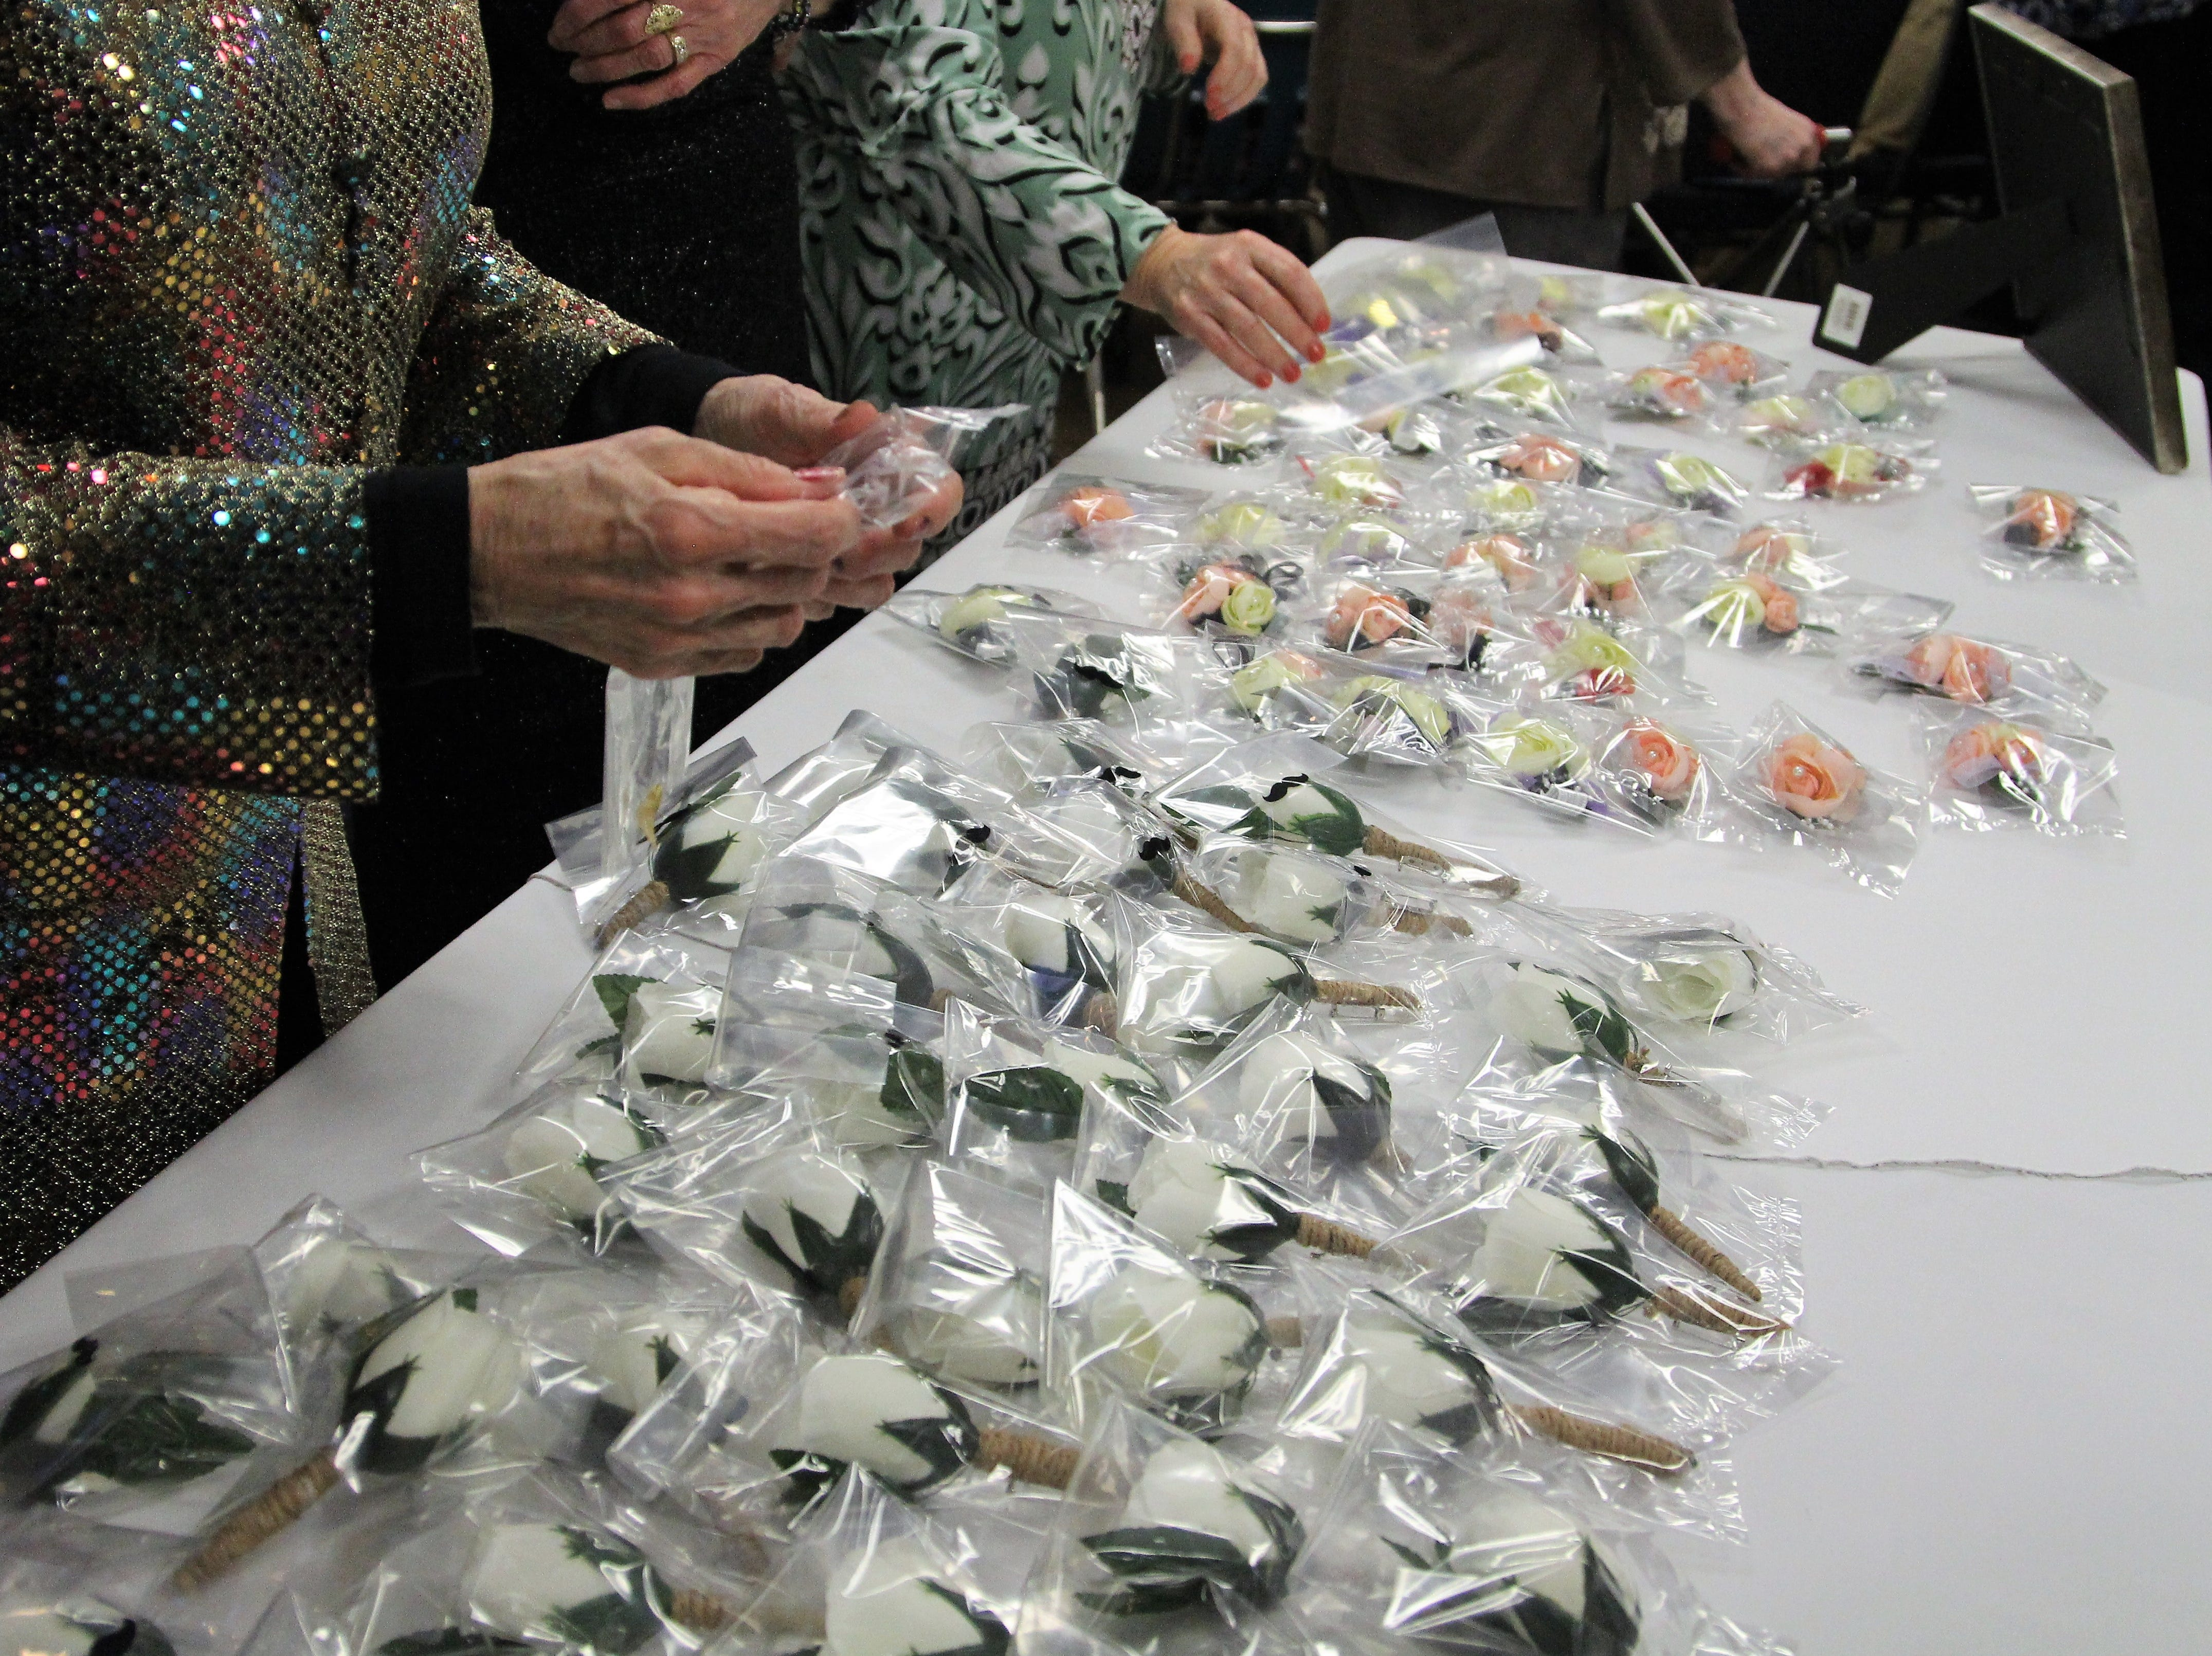 corsages lined a table at Marion First Church of the Nazarene Friday, Feb. 8. Over 300 volunteerswalked around the church, checked guest in, shined shoes, applied make-up and handed out corsages.